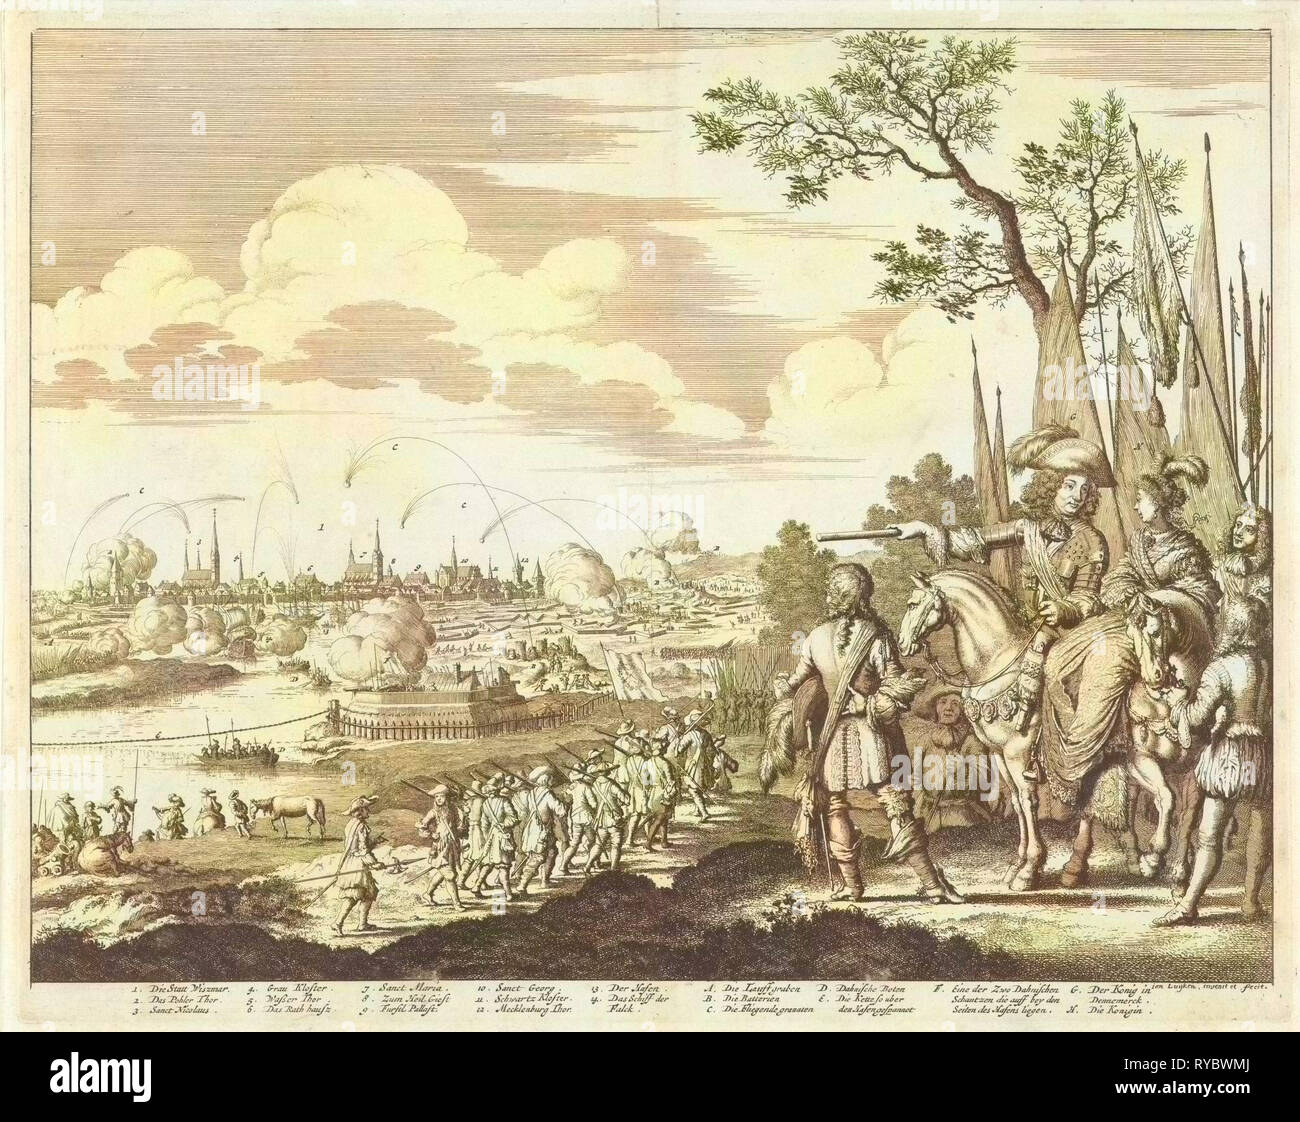 Siege and conquest of Wismar by the Danish Army, 1675, Germany - Stock Image